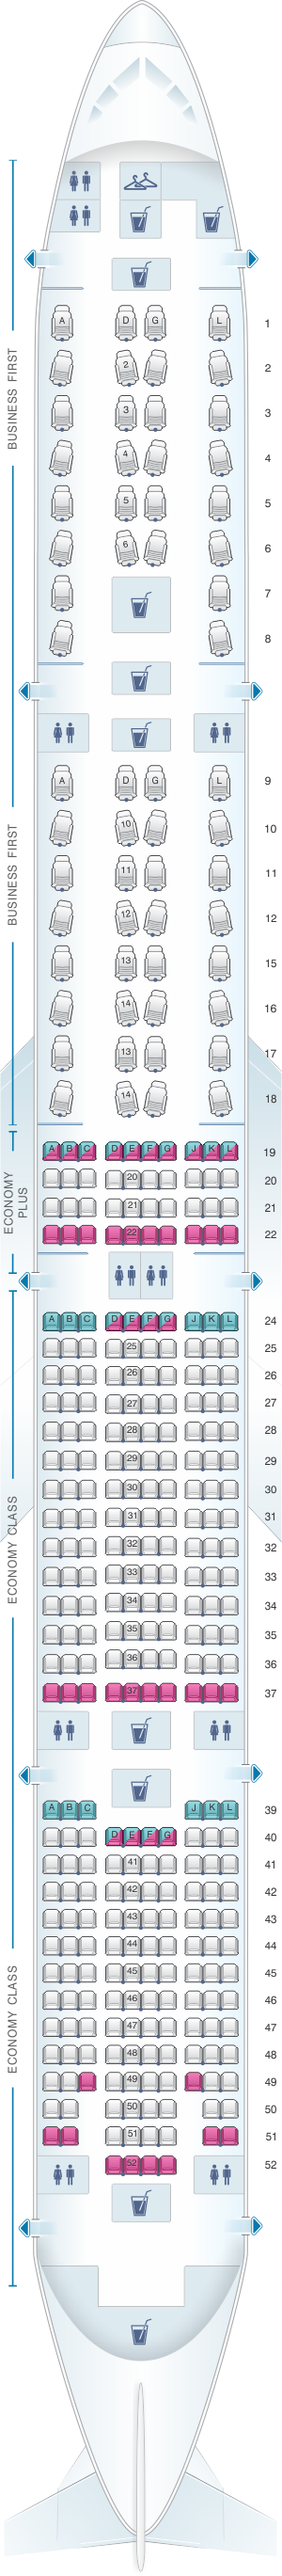 Seat map for United Airlines Boeing B777 300ER